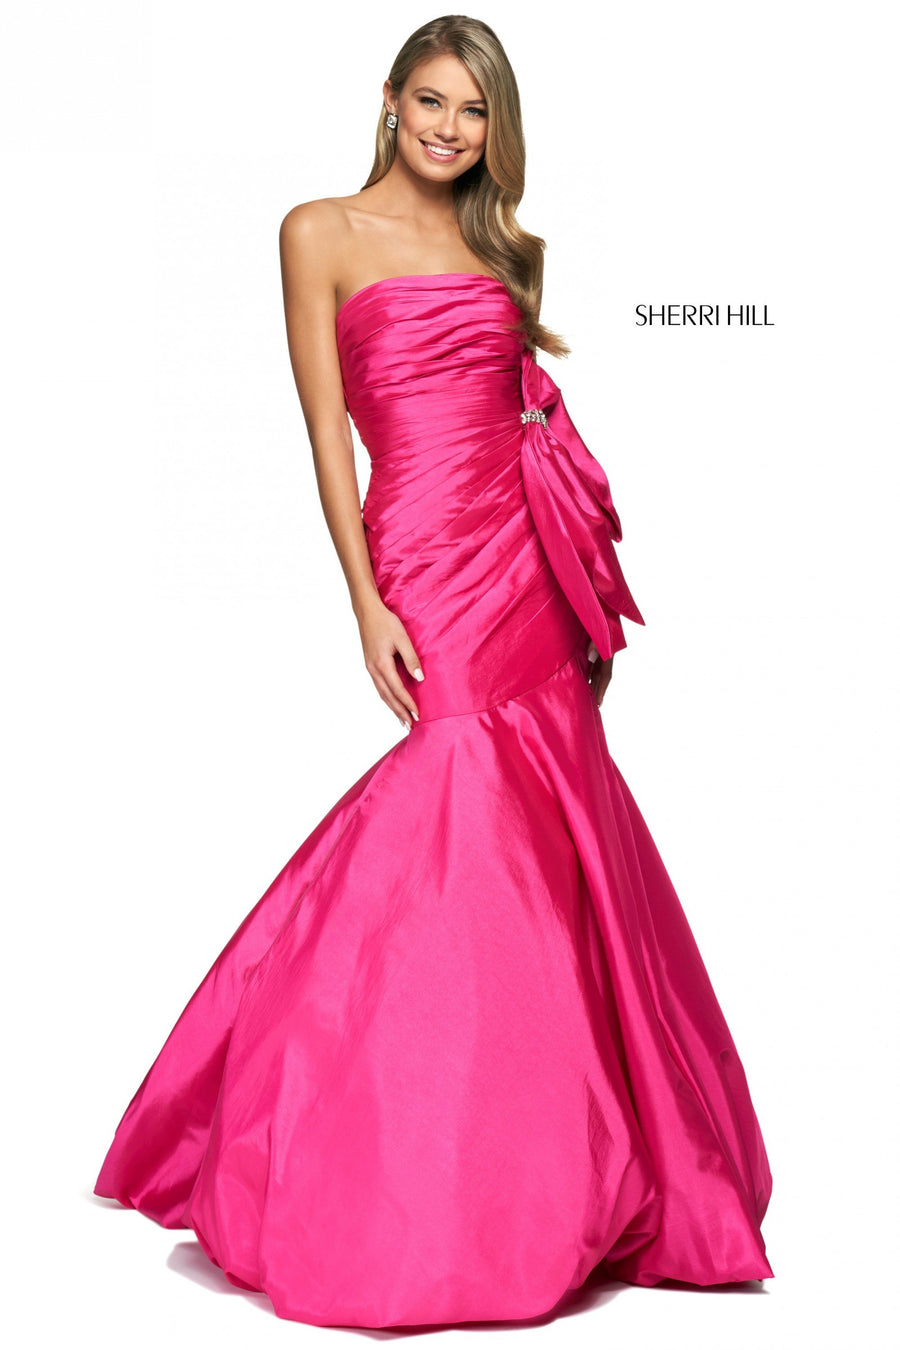 Sherri Hill 54027 prom dress images.  Sherri Hill 54027 is available in these colors: Black, Teal, Emerald, Bright Pink, Red.